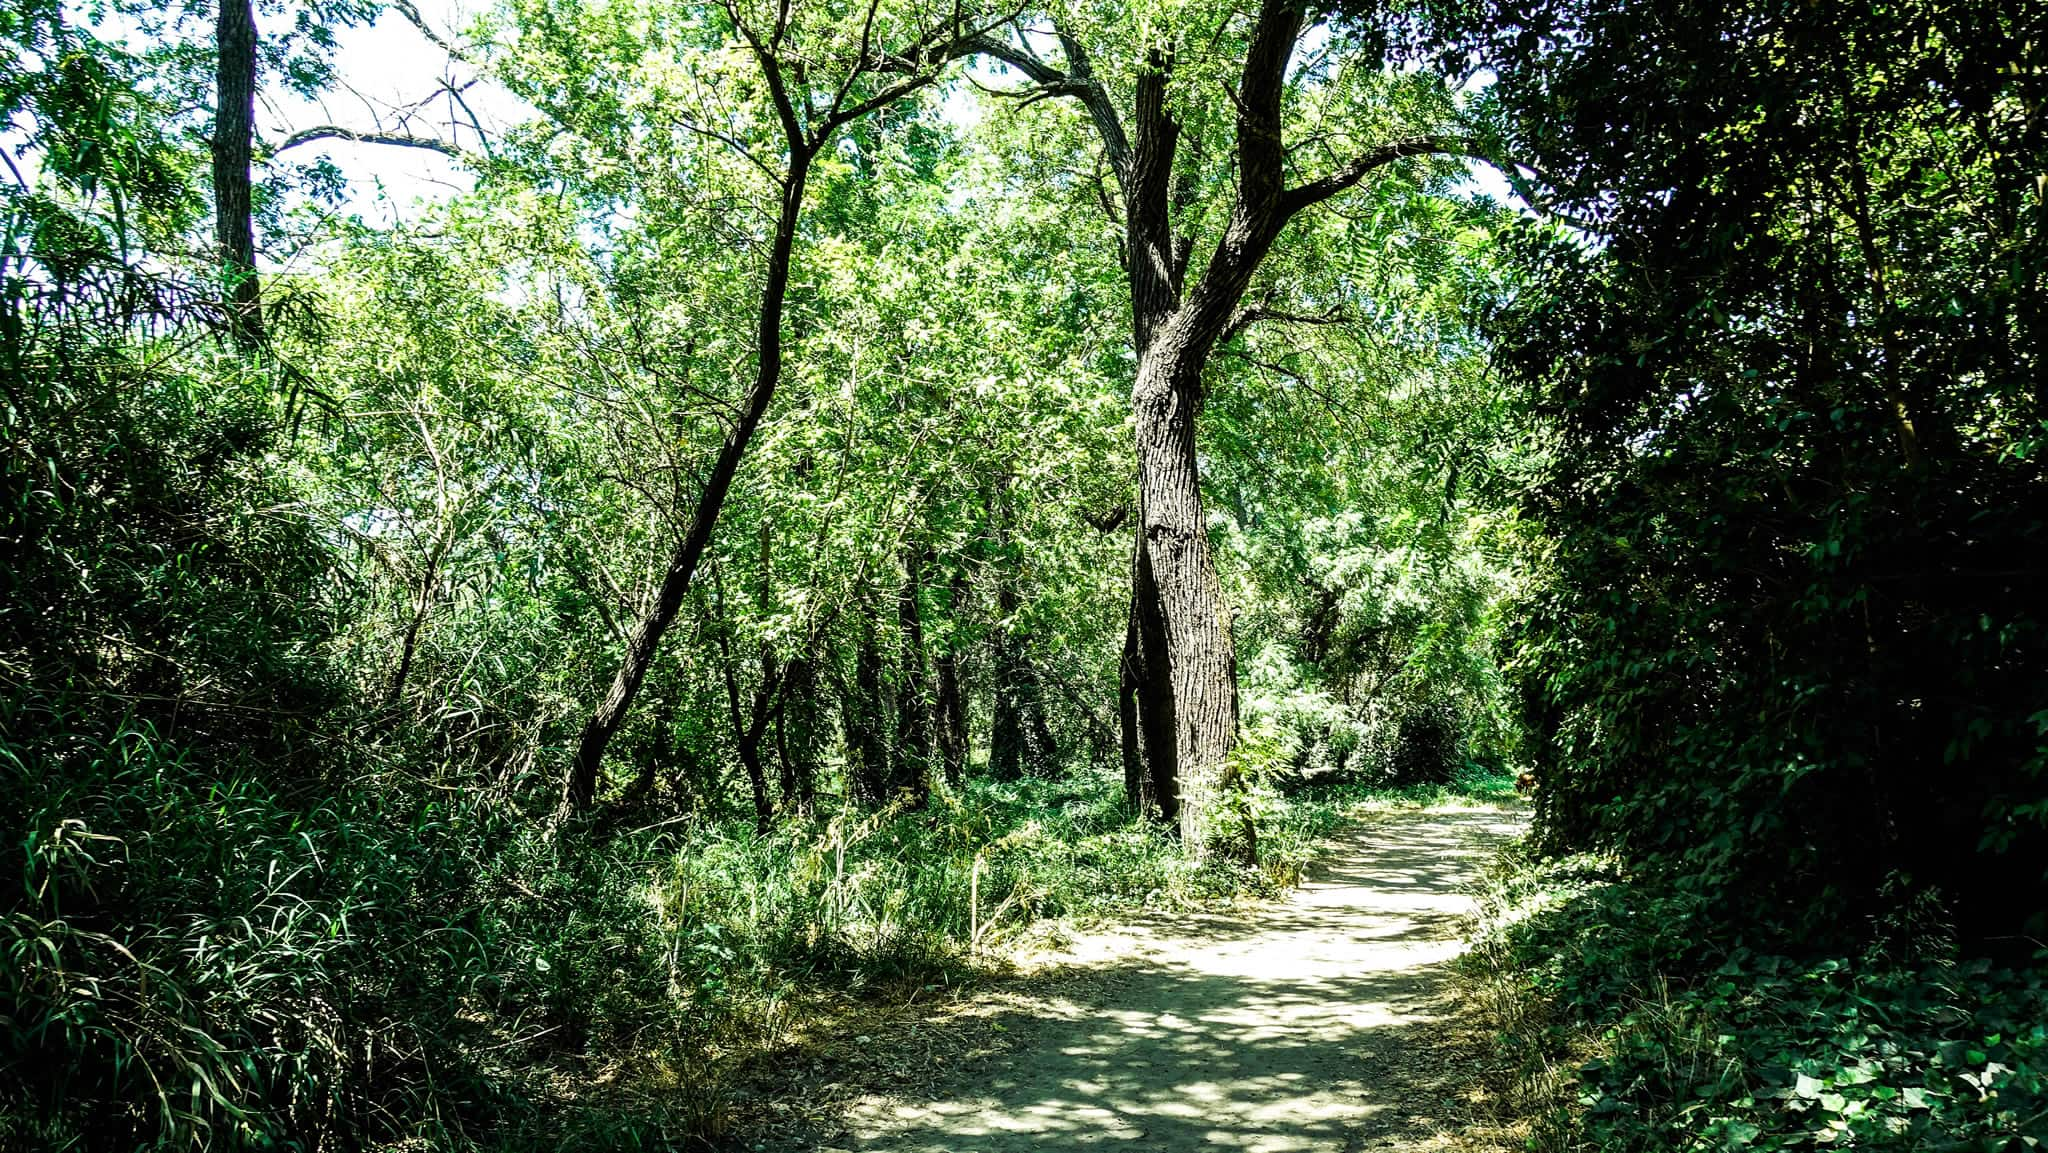 Riverwalk Trail has Nice Sections which are Well-Shaded